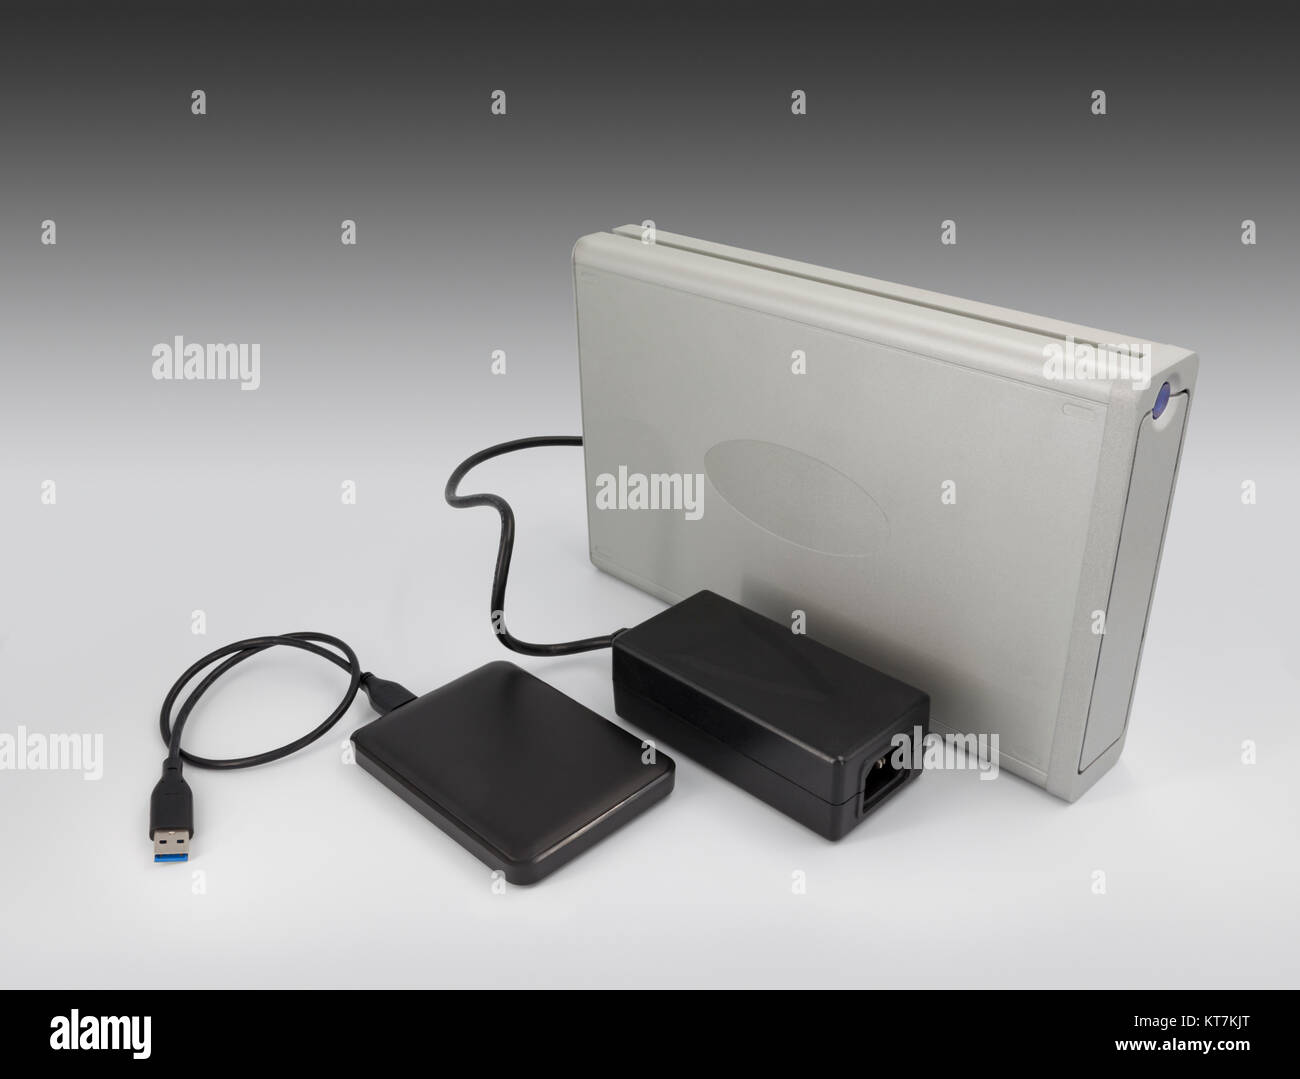 A comparison between hard-drive computer technology within 10 years showing one large hard metal case and one small - Stock Image